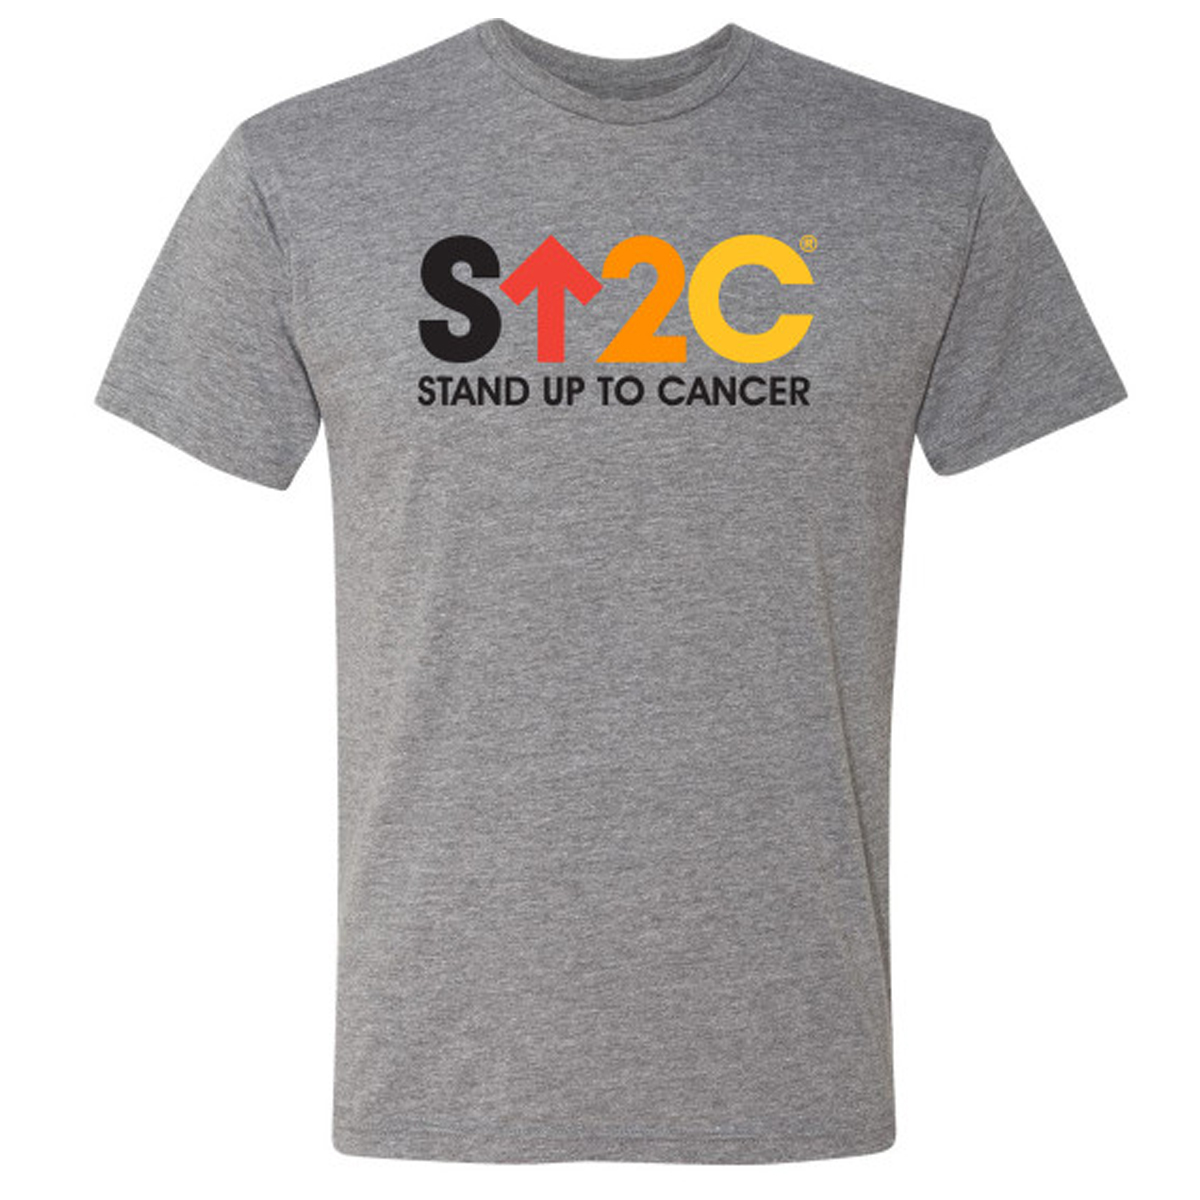 SU2C Short Logo TriBlend T-Shirt, Heather Grey